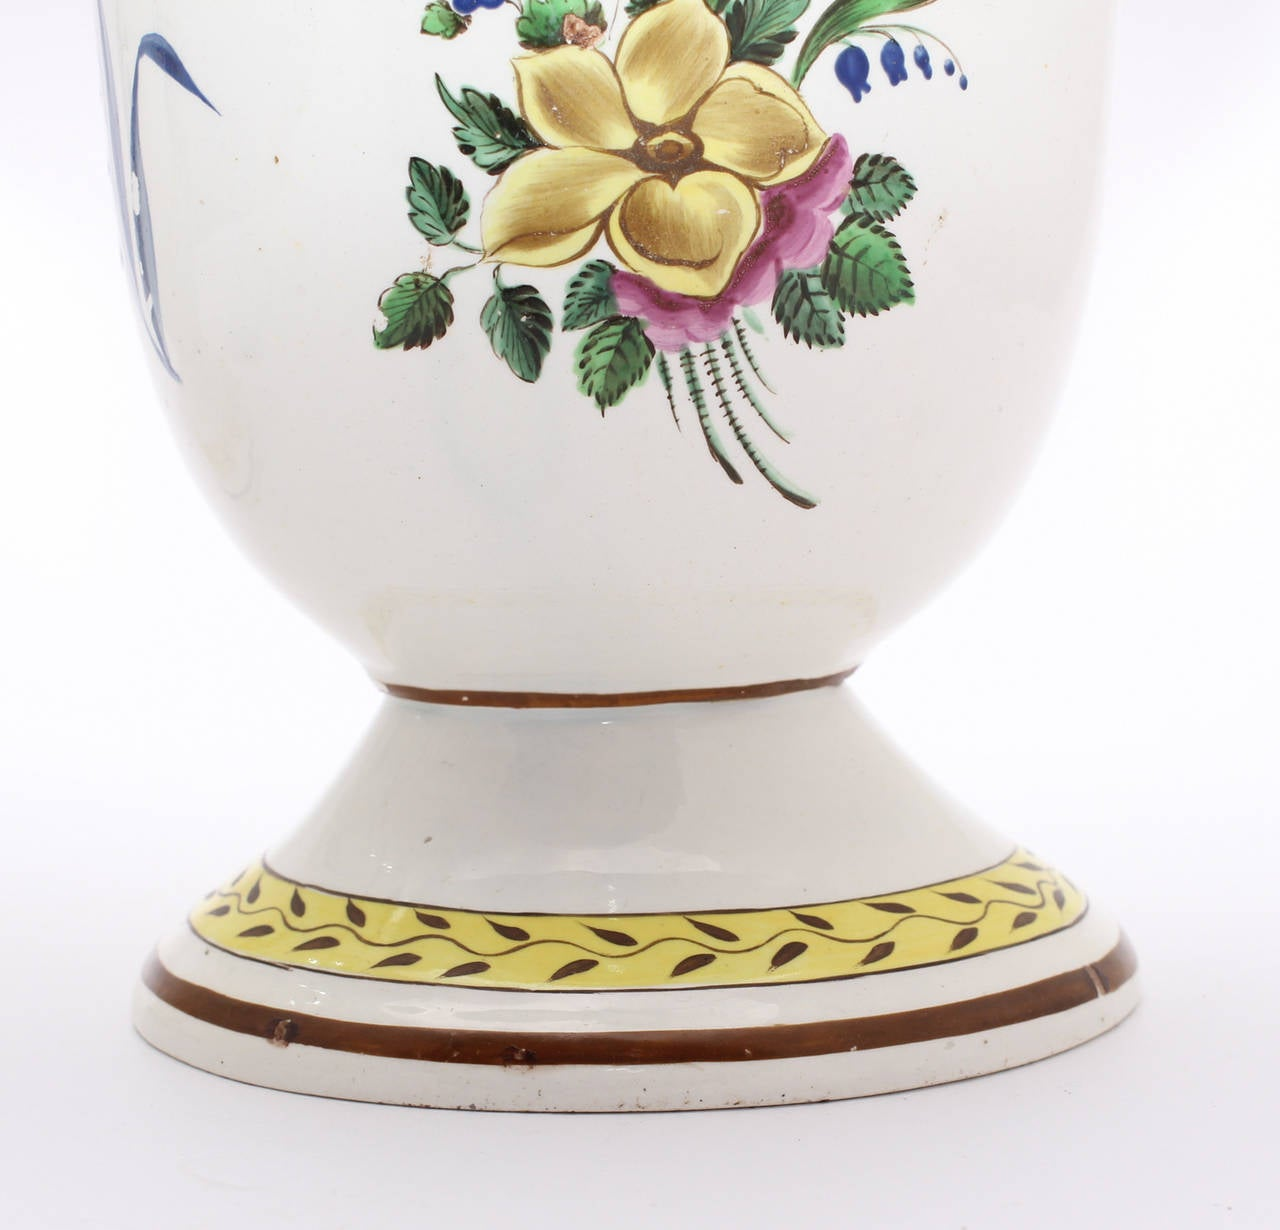 19th Century Pair of French Creamware Vases, Flower Decoration, circa 1800 For Sale